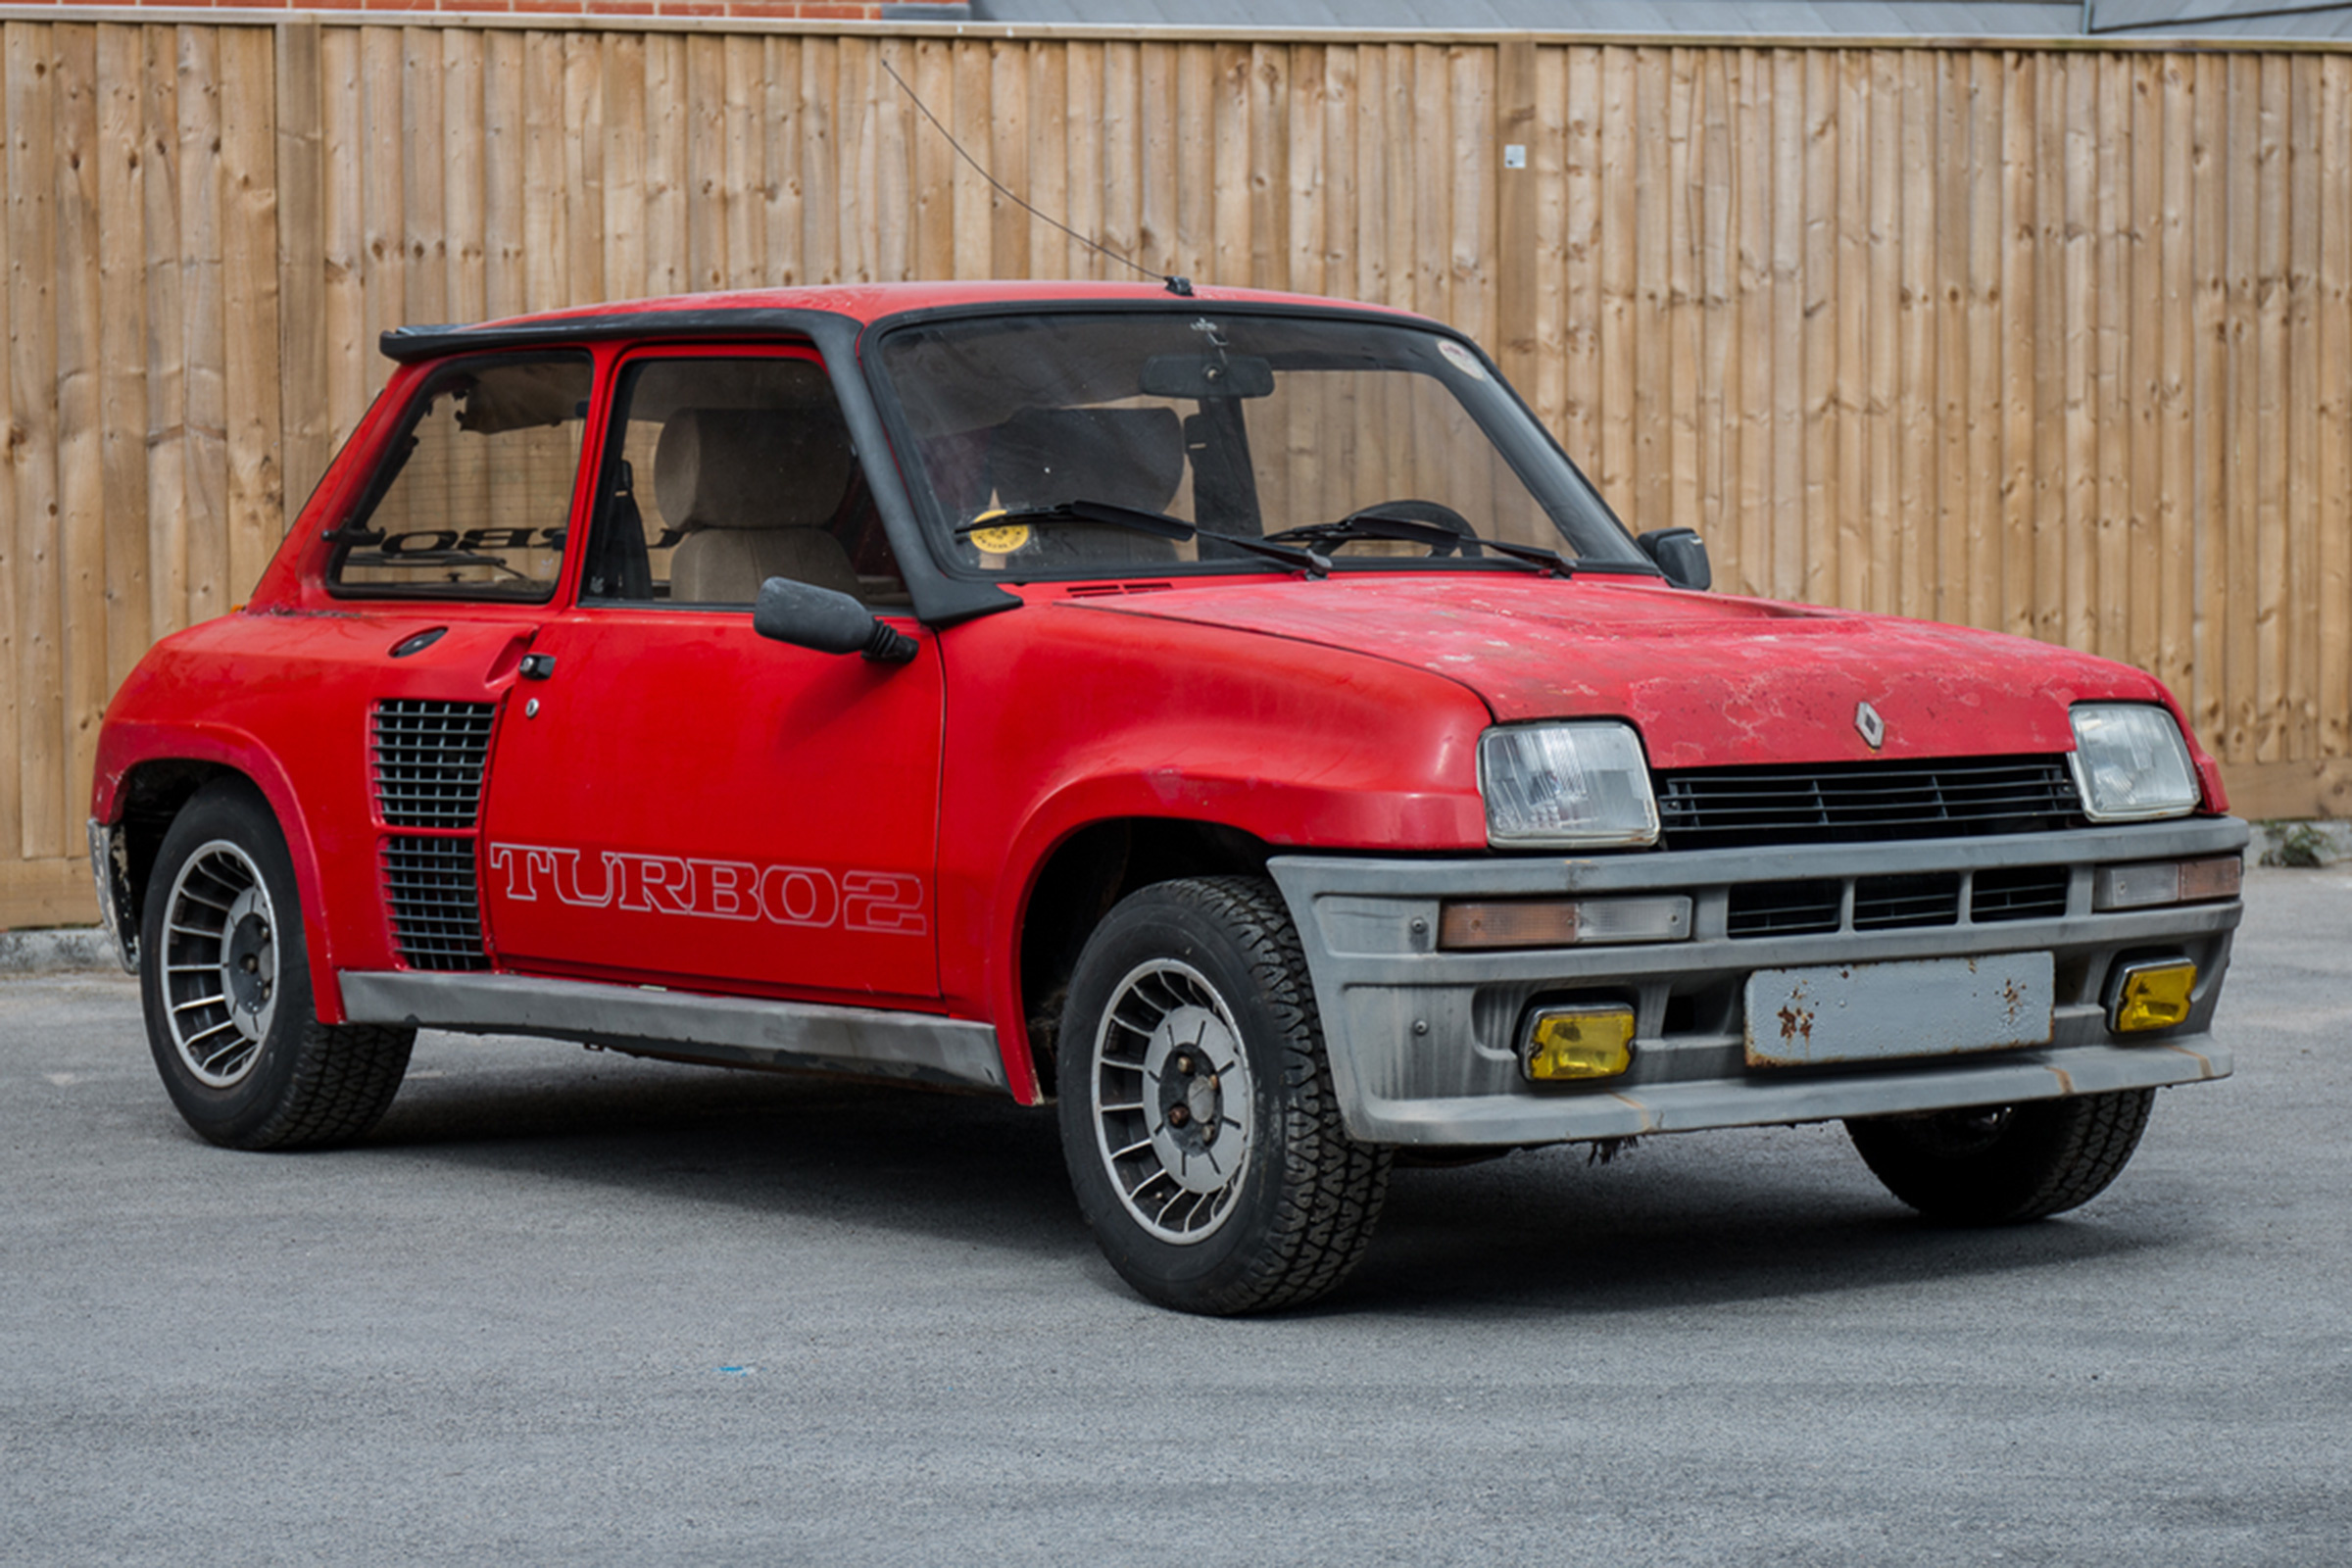 Renault 5 Turbo 2 Heading To Auction With 25k Estimate Evo